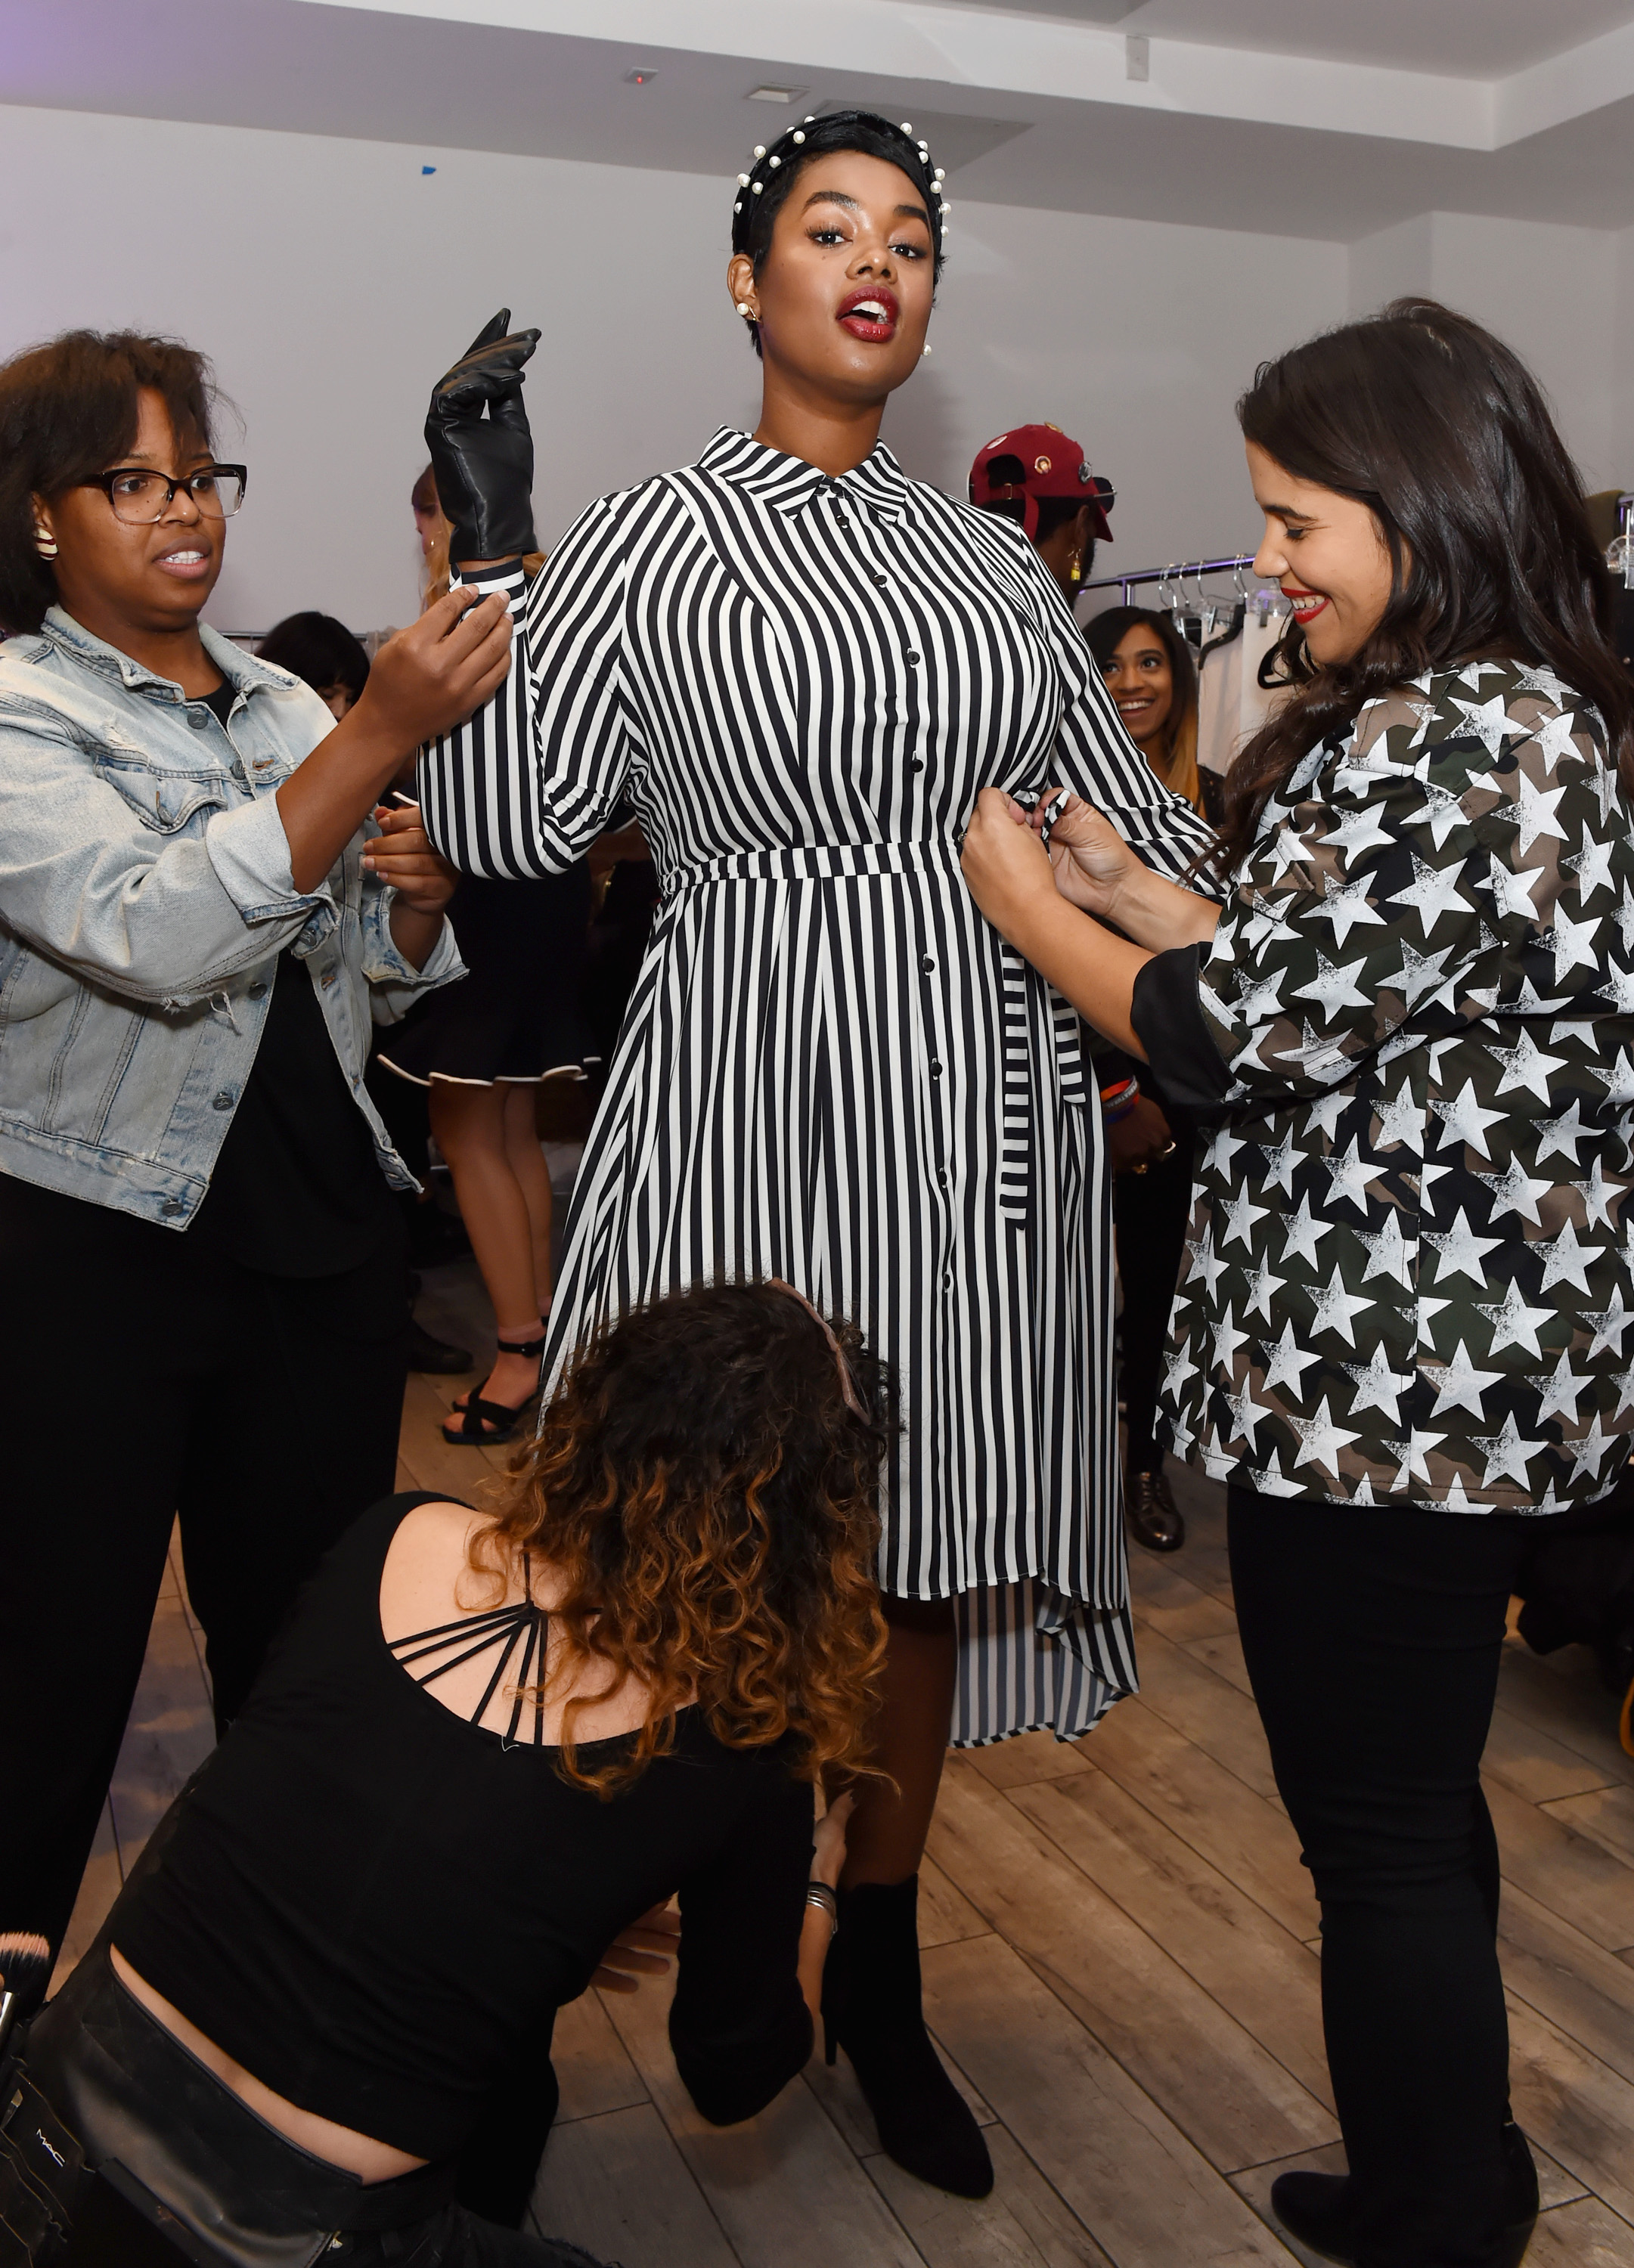 Model Precious Lee backstage during the Dia&Co fashion show and industry panel at the CURVYcon at Metropolitan Pavilion West on September 8, 2017 in New York City. (Photo by Daniel Zuchnik/Getty Images for Dia&Co,)